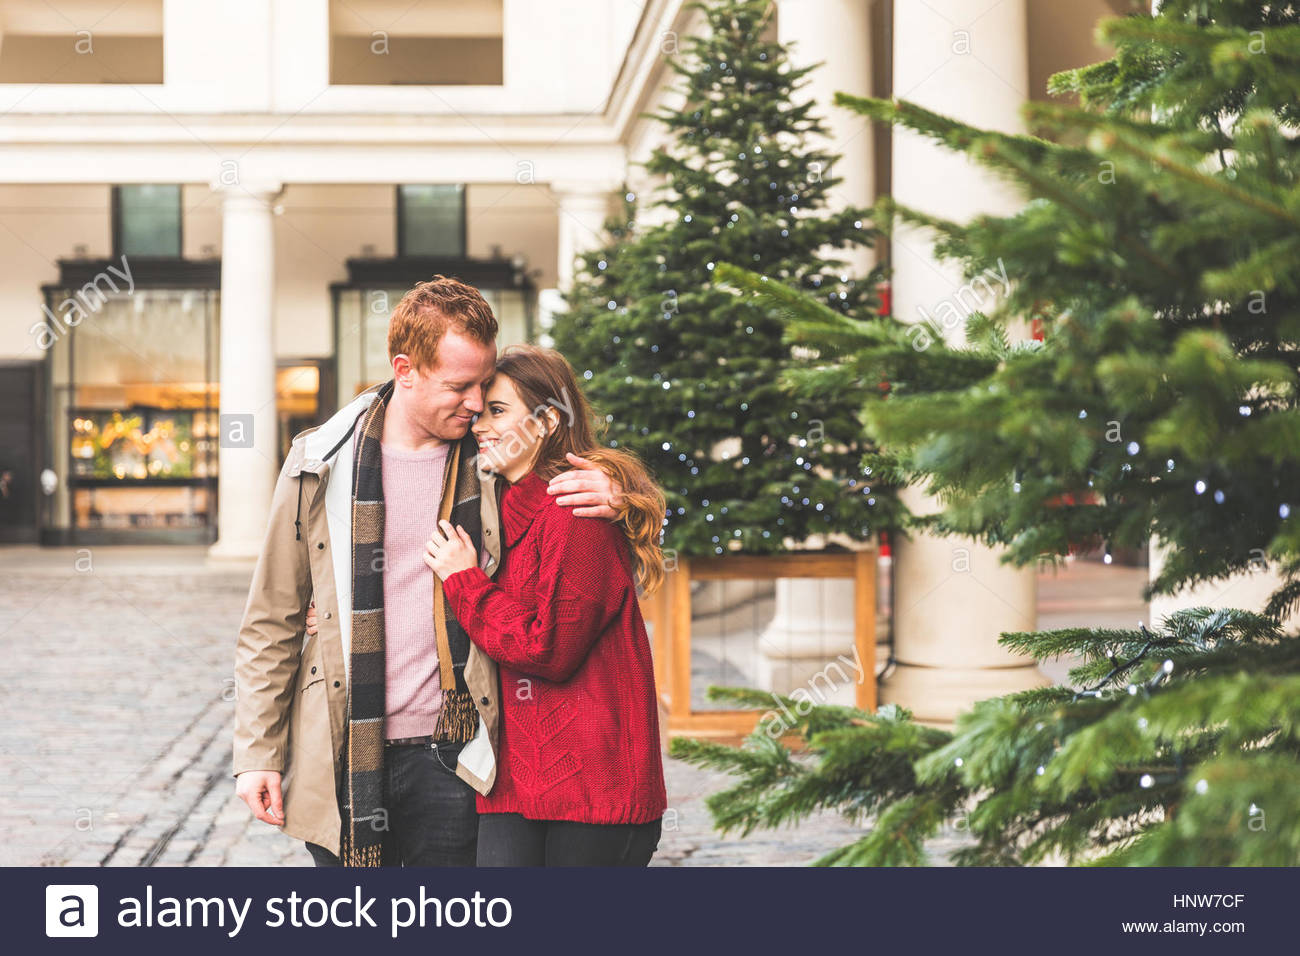 Couple hugging, Covent Garden, London, UK - Stock Image